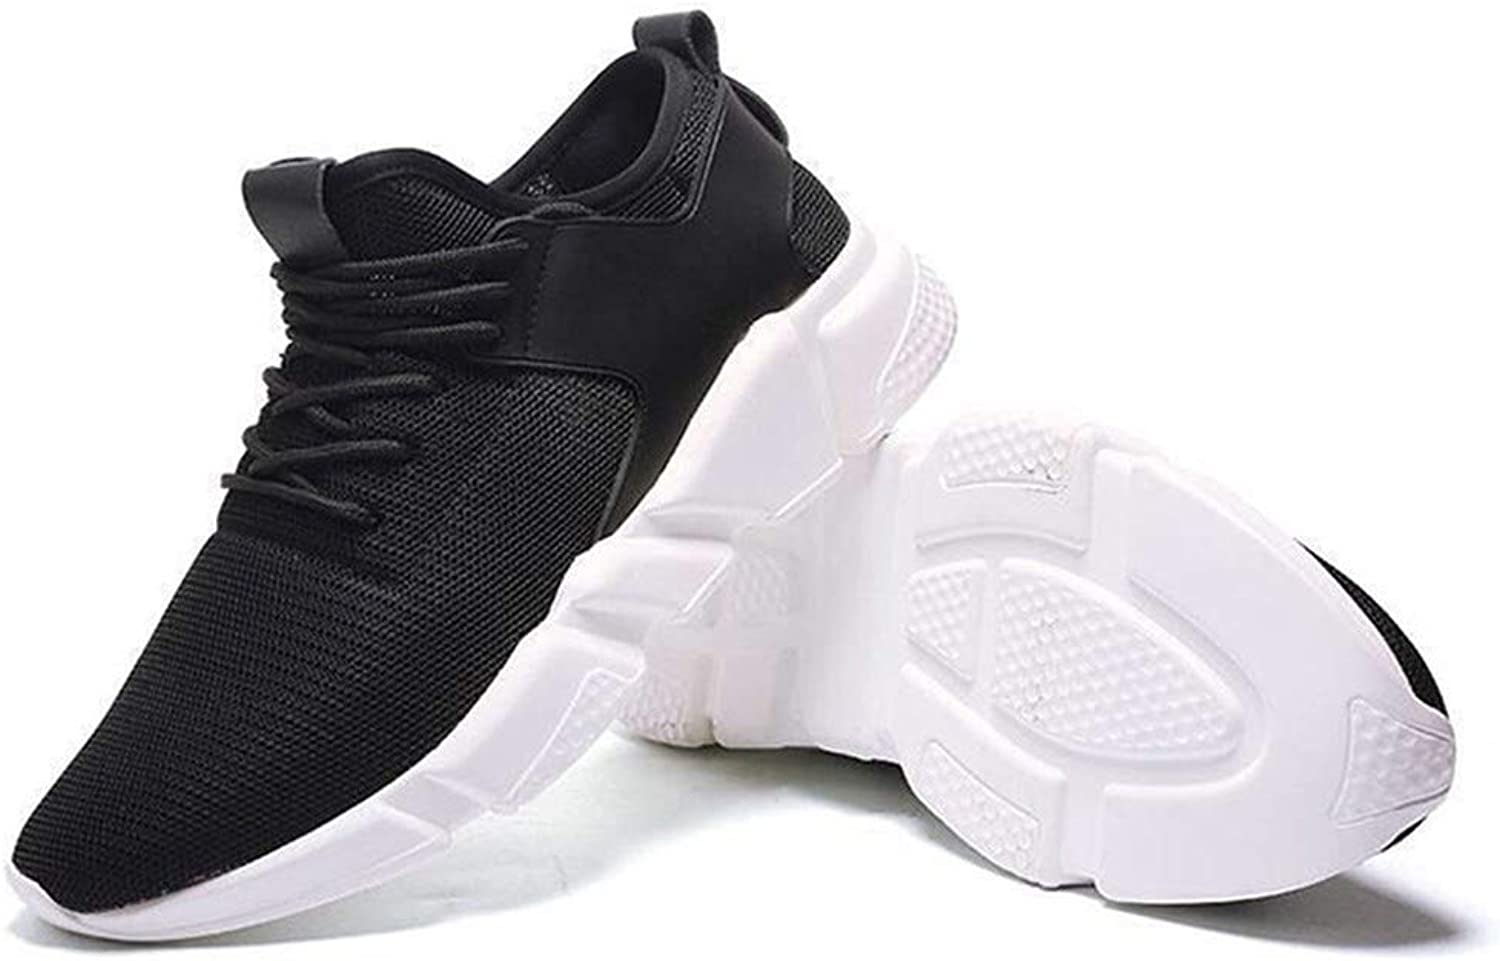 Pophight Casual Fashion Sneakers Lightweight Breathable Athletic Sport shoes Black